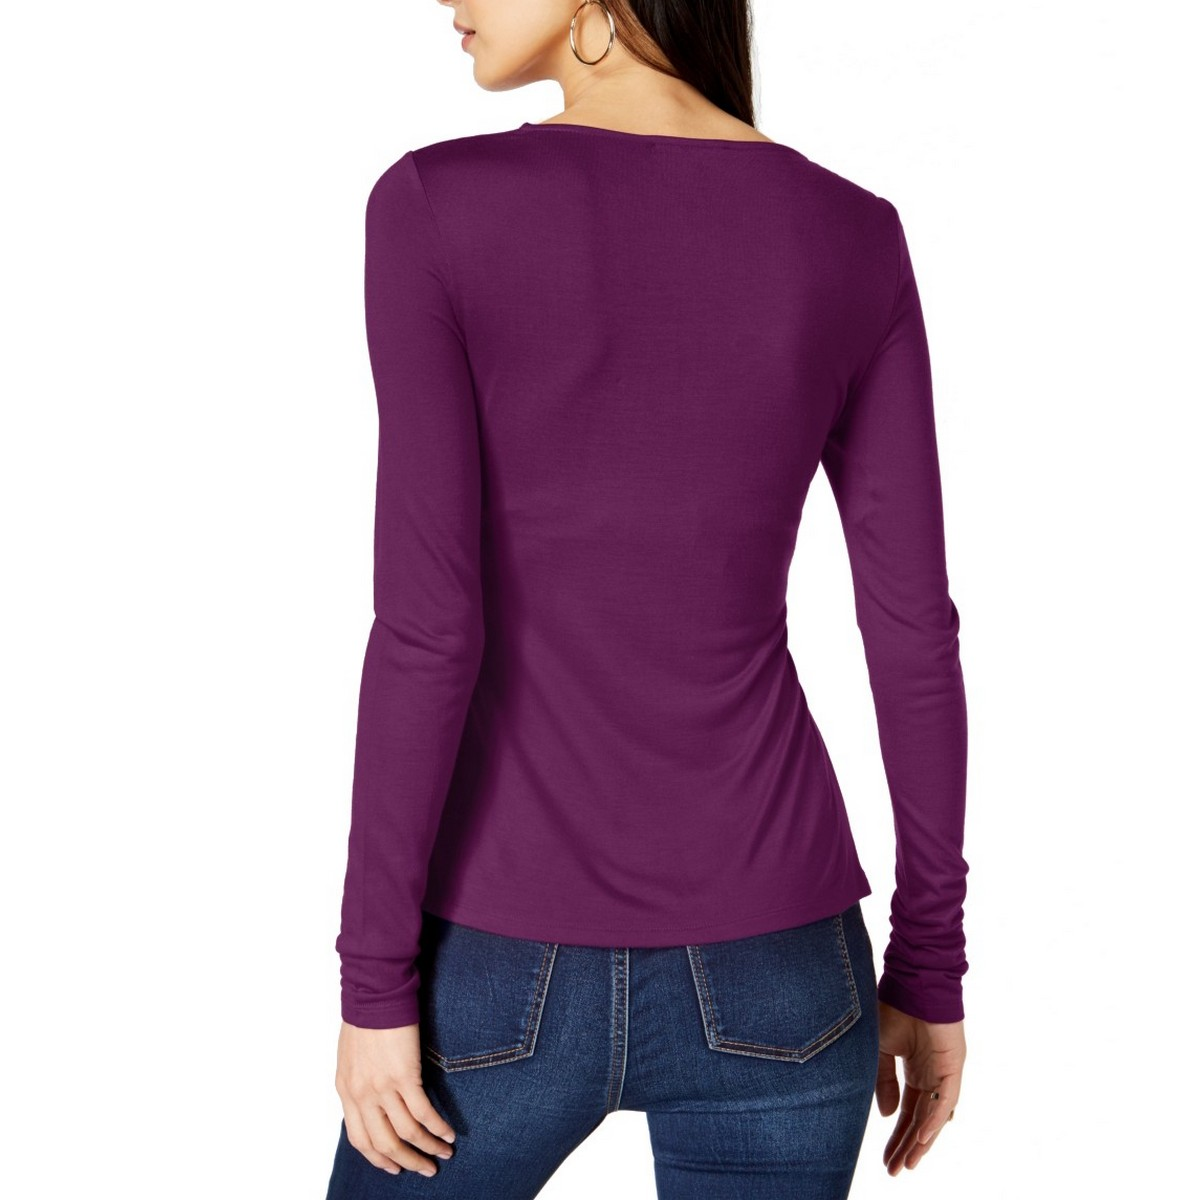 INC-NEW-Women-039-s-Solid-Long-Sleeve-Cowl-neck-Blouse-Shirt-Top-TEDO thumbnail 5